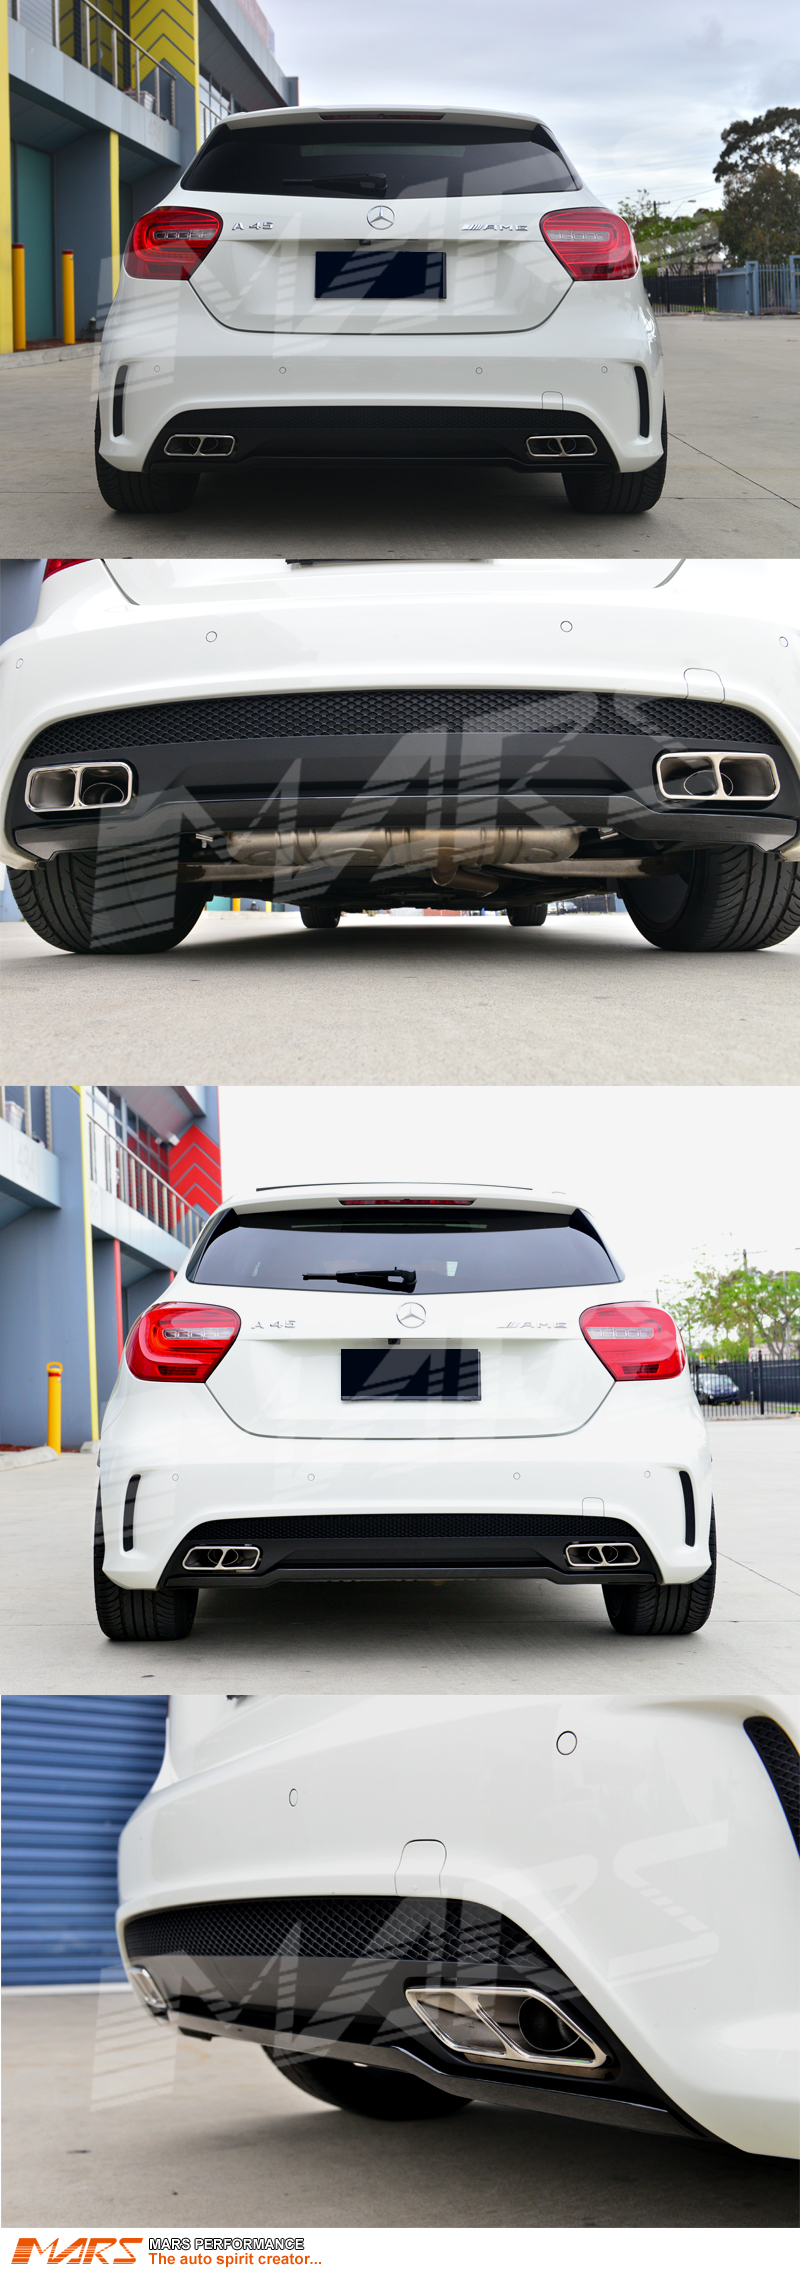 amg a45 style rear bumper bar diffuser with exhaust tips. Black Bedroom Furniture Sets. Home Design Ideas